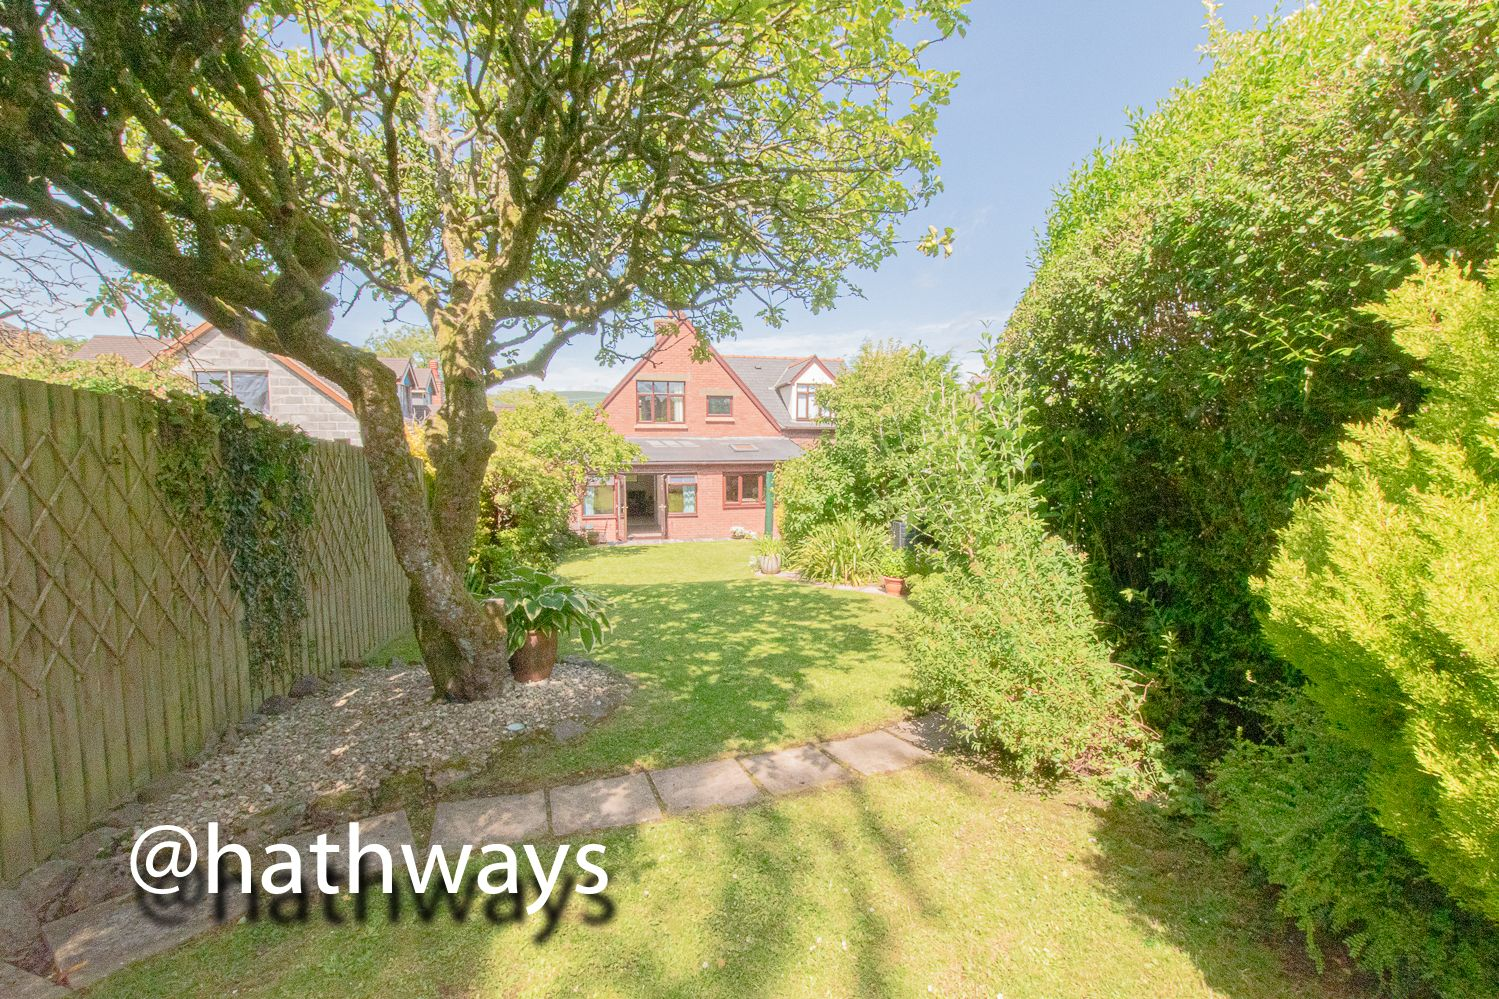 4 bed house for sale in Ashford Close South  - Property Image 55